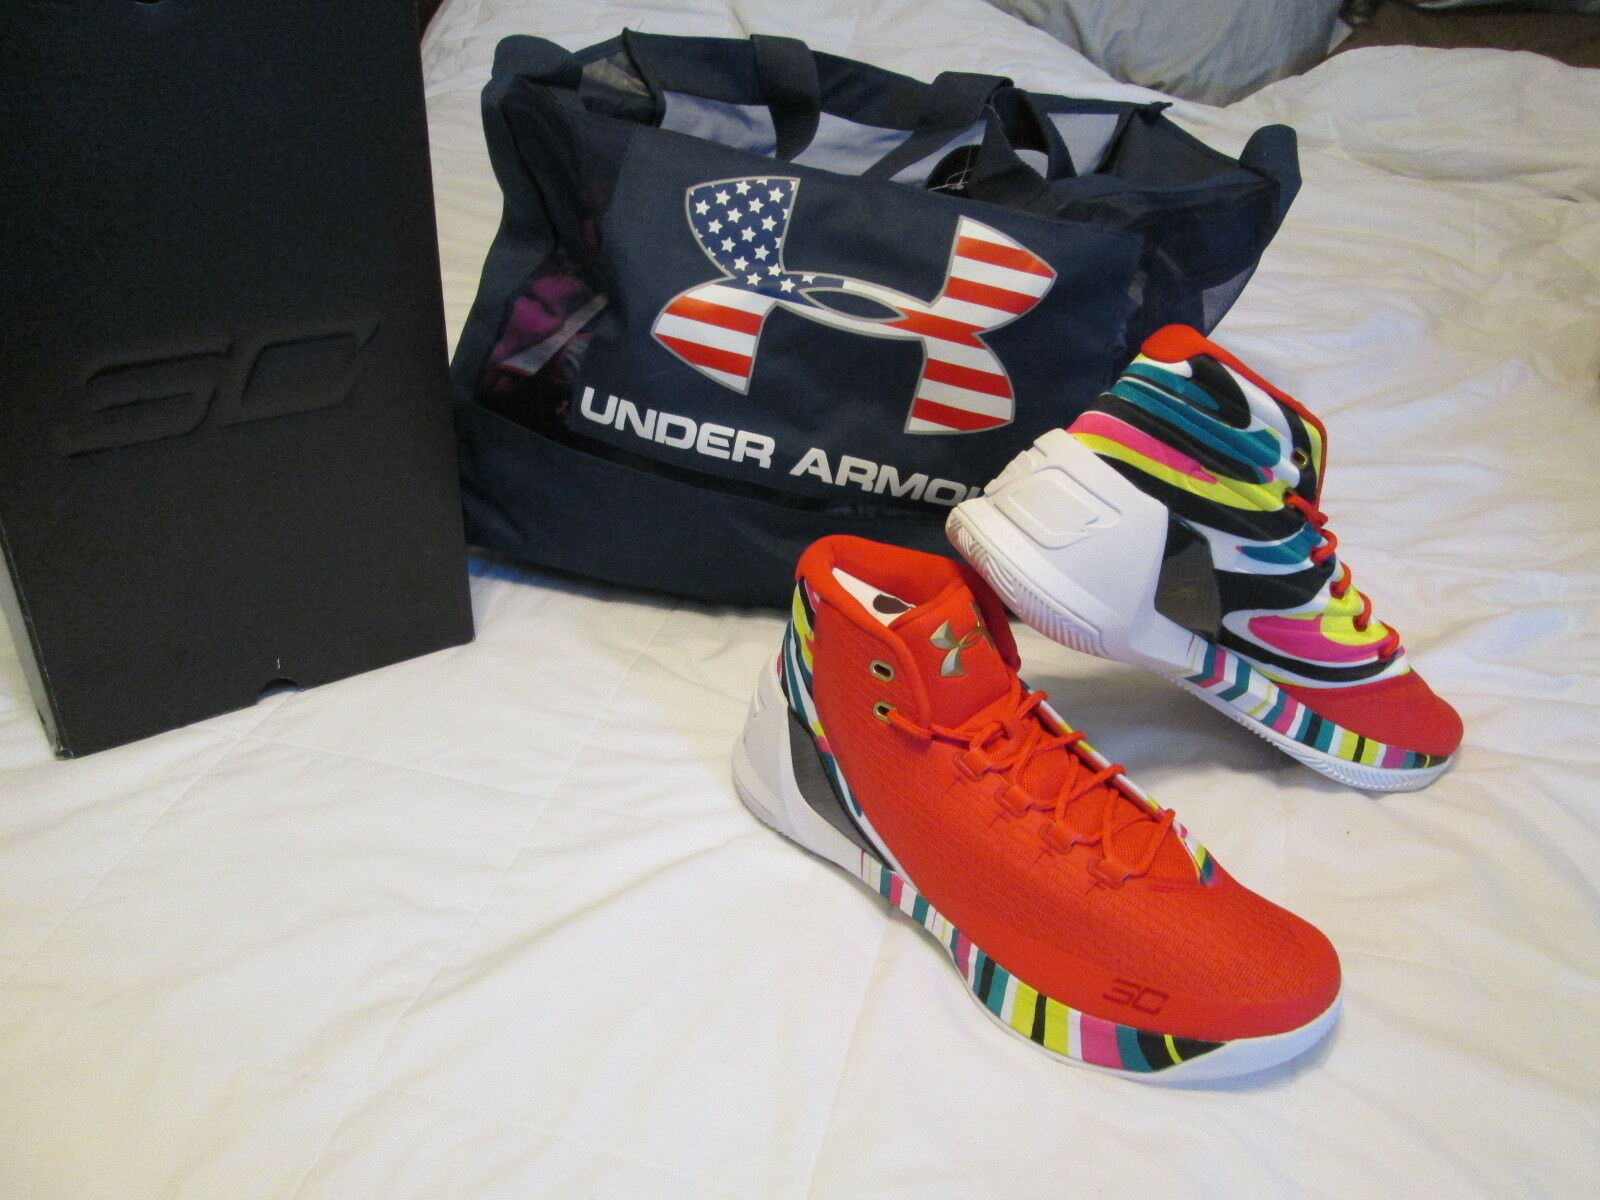 NEW Mens Under Armour Curry 3 CNY Rocket Red Basketball Shoes 12 FREE SHIP